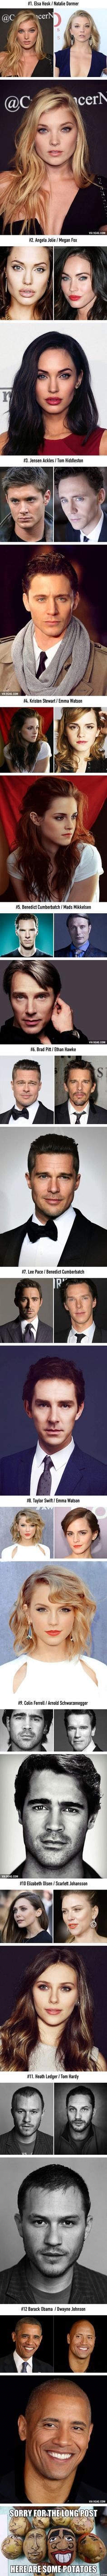 12 Celebrity Face Mashups That Are Simple Perfect